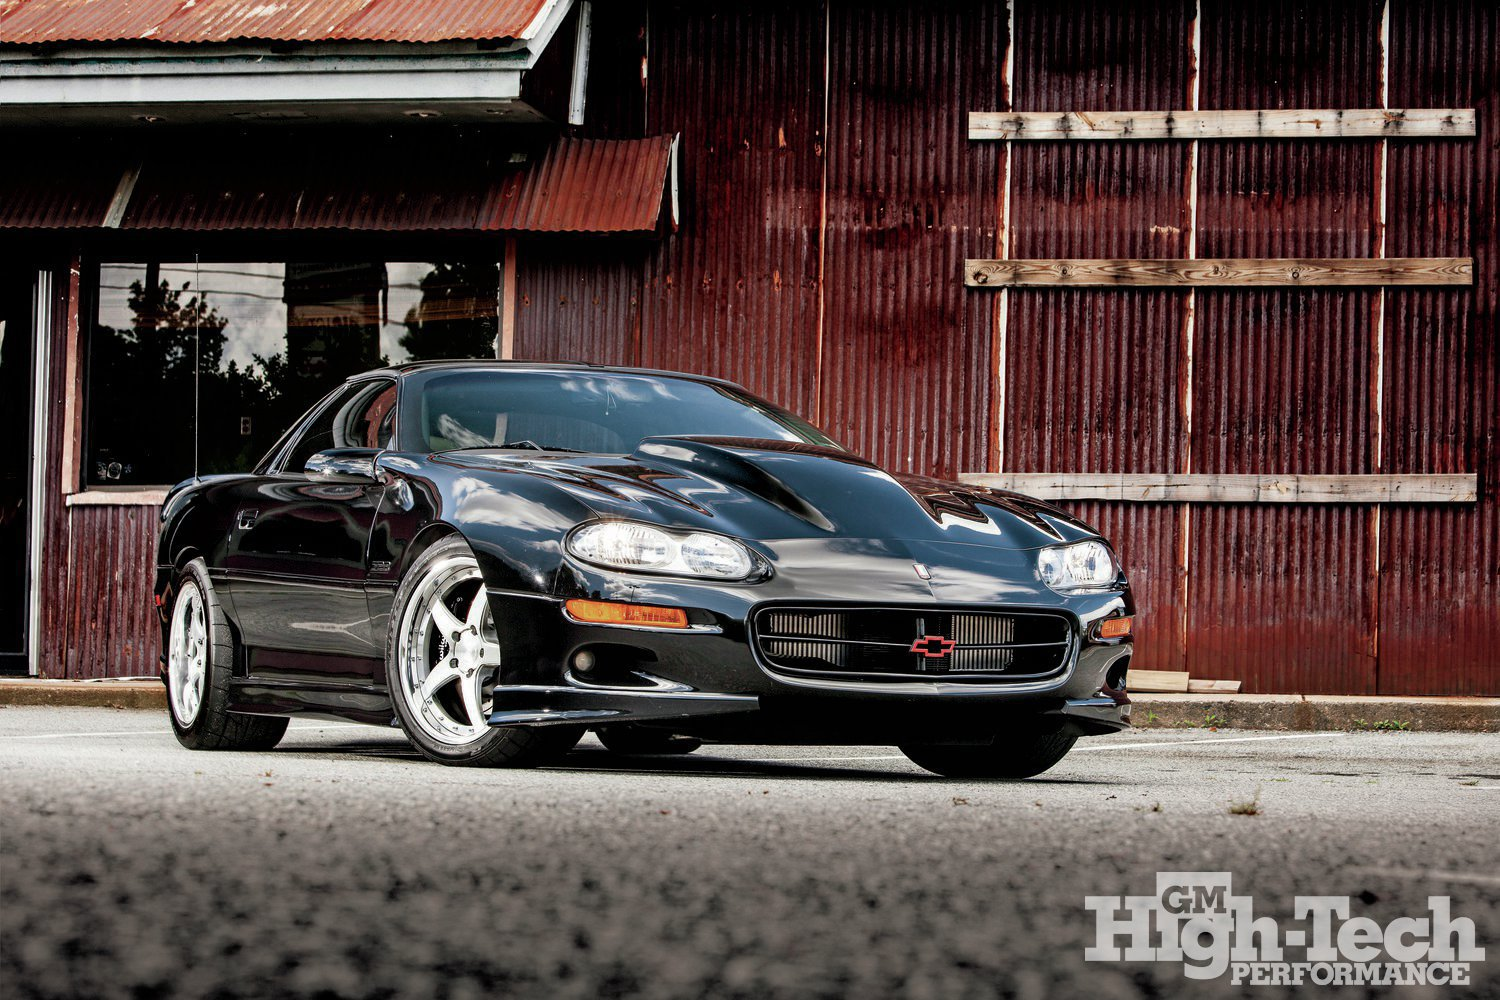 1999 Chevrolet Camaro Z28 - It's All Good